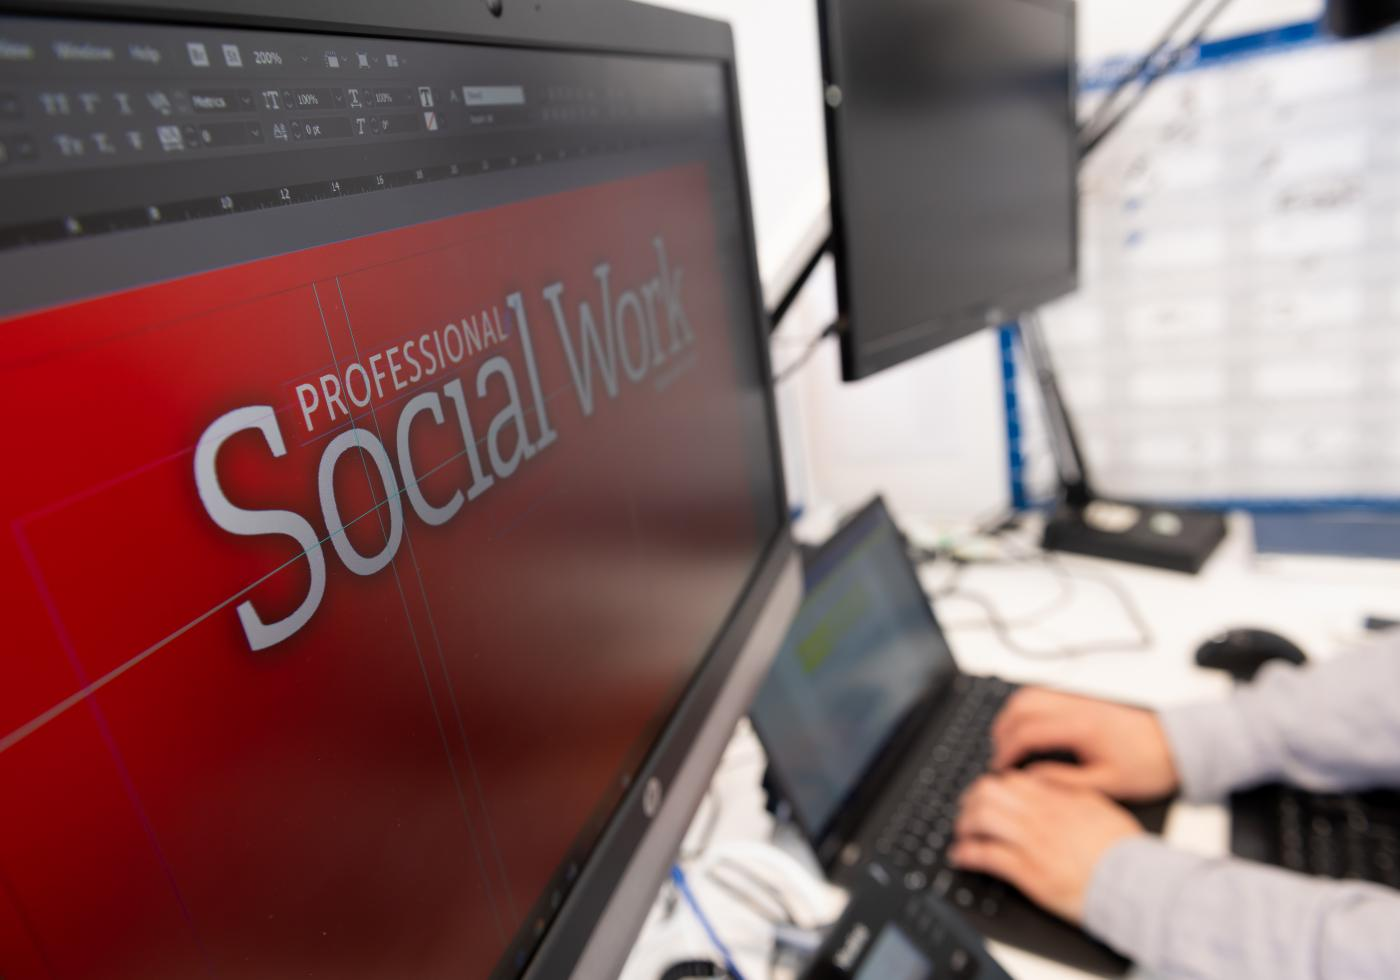 Professional Social Work Magazine being developed